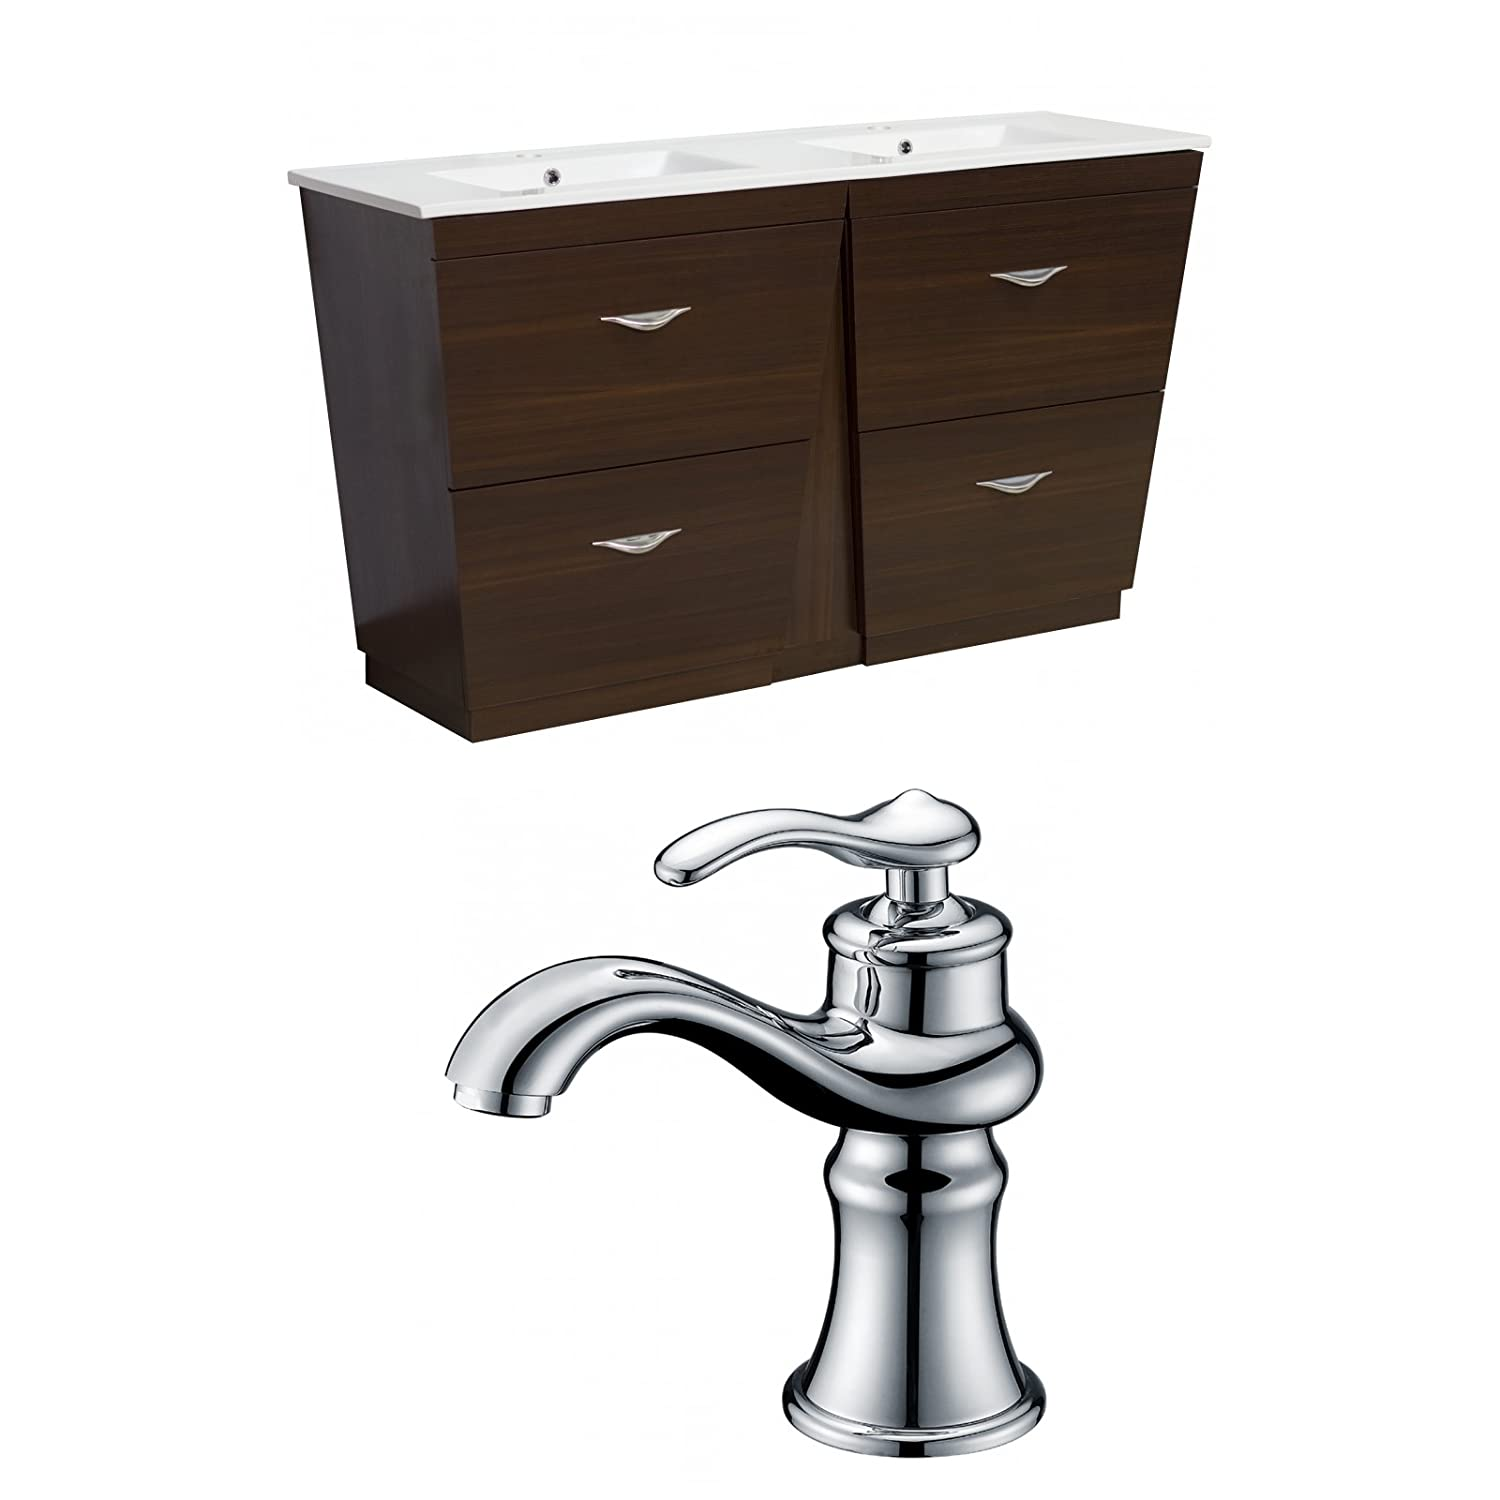 "high-quality Jade Bath JB-9051 60"" W x 18.5"" D Plywood-Melamine Vanity Set with Single Hole CUPC Faucet, Wenge"